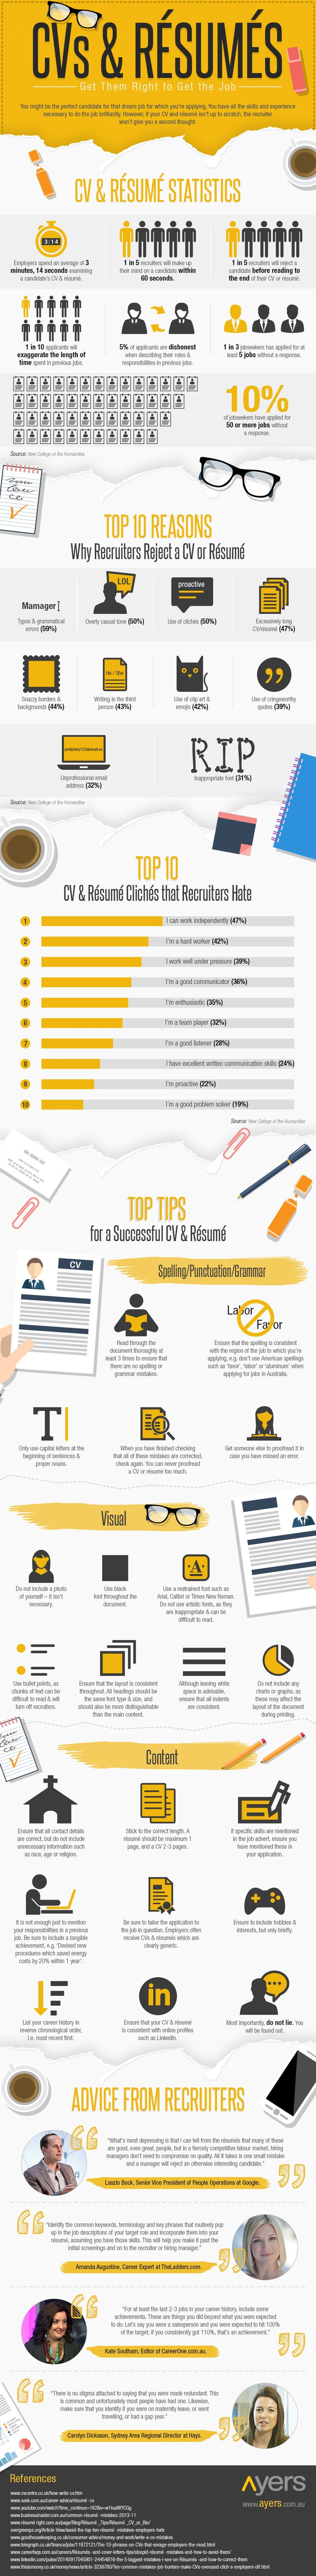 17 best ideas about get the job how to resume how the cvs resumes get them right to get the job infographic presents what is